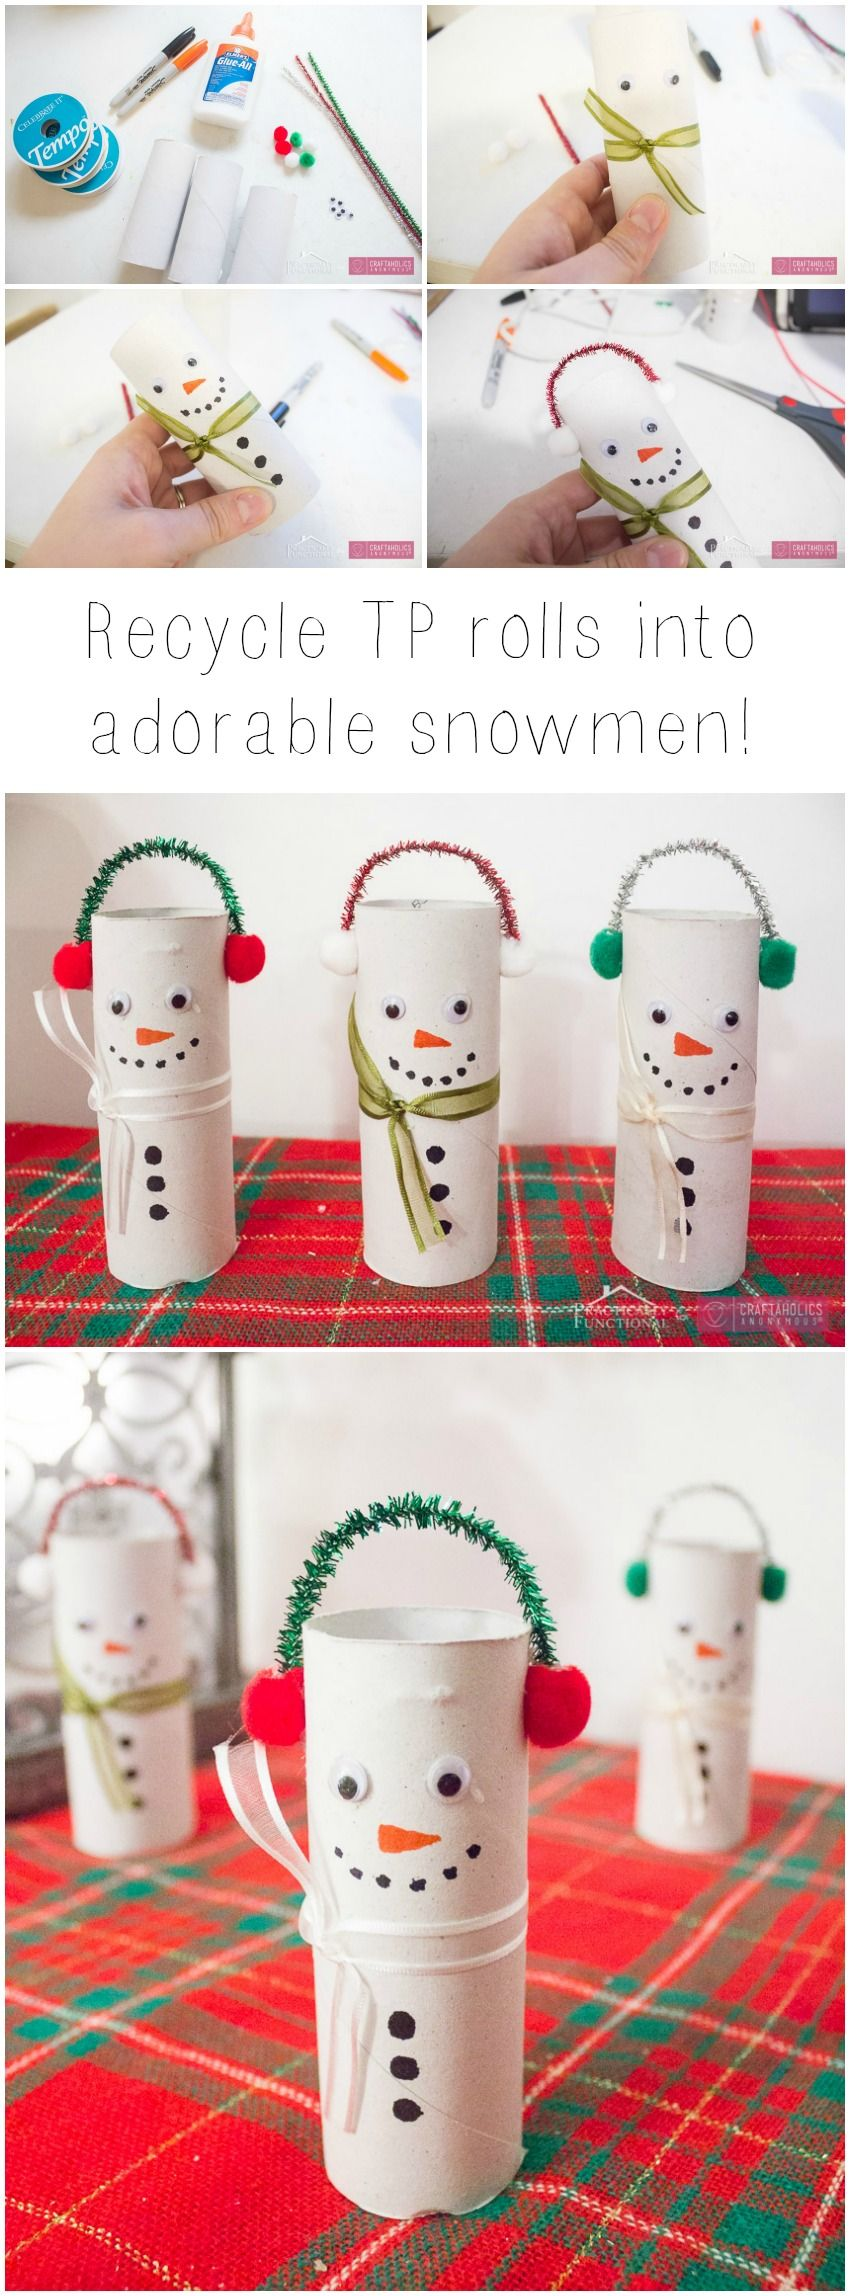 DIY Toilet Paper Roll Snowmen Ultimate DIY Board